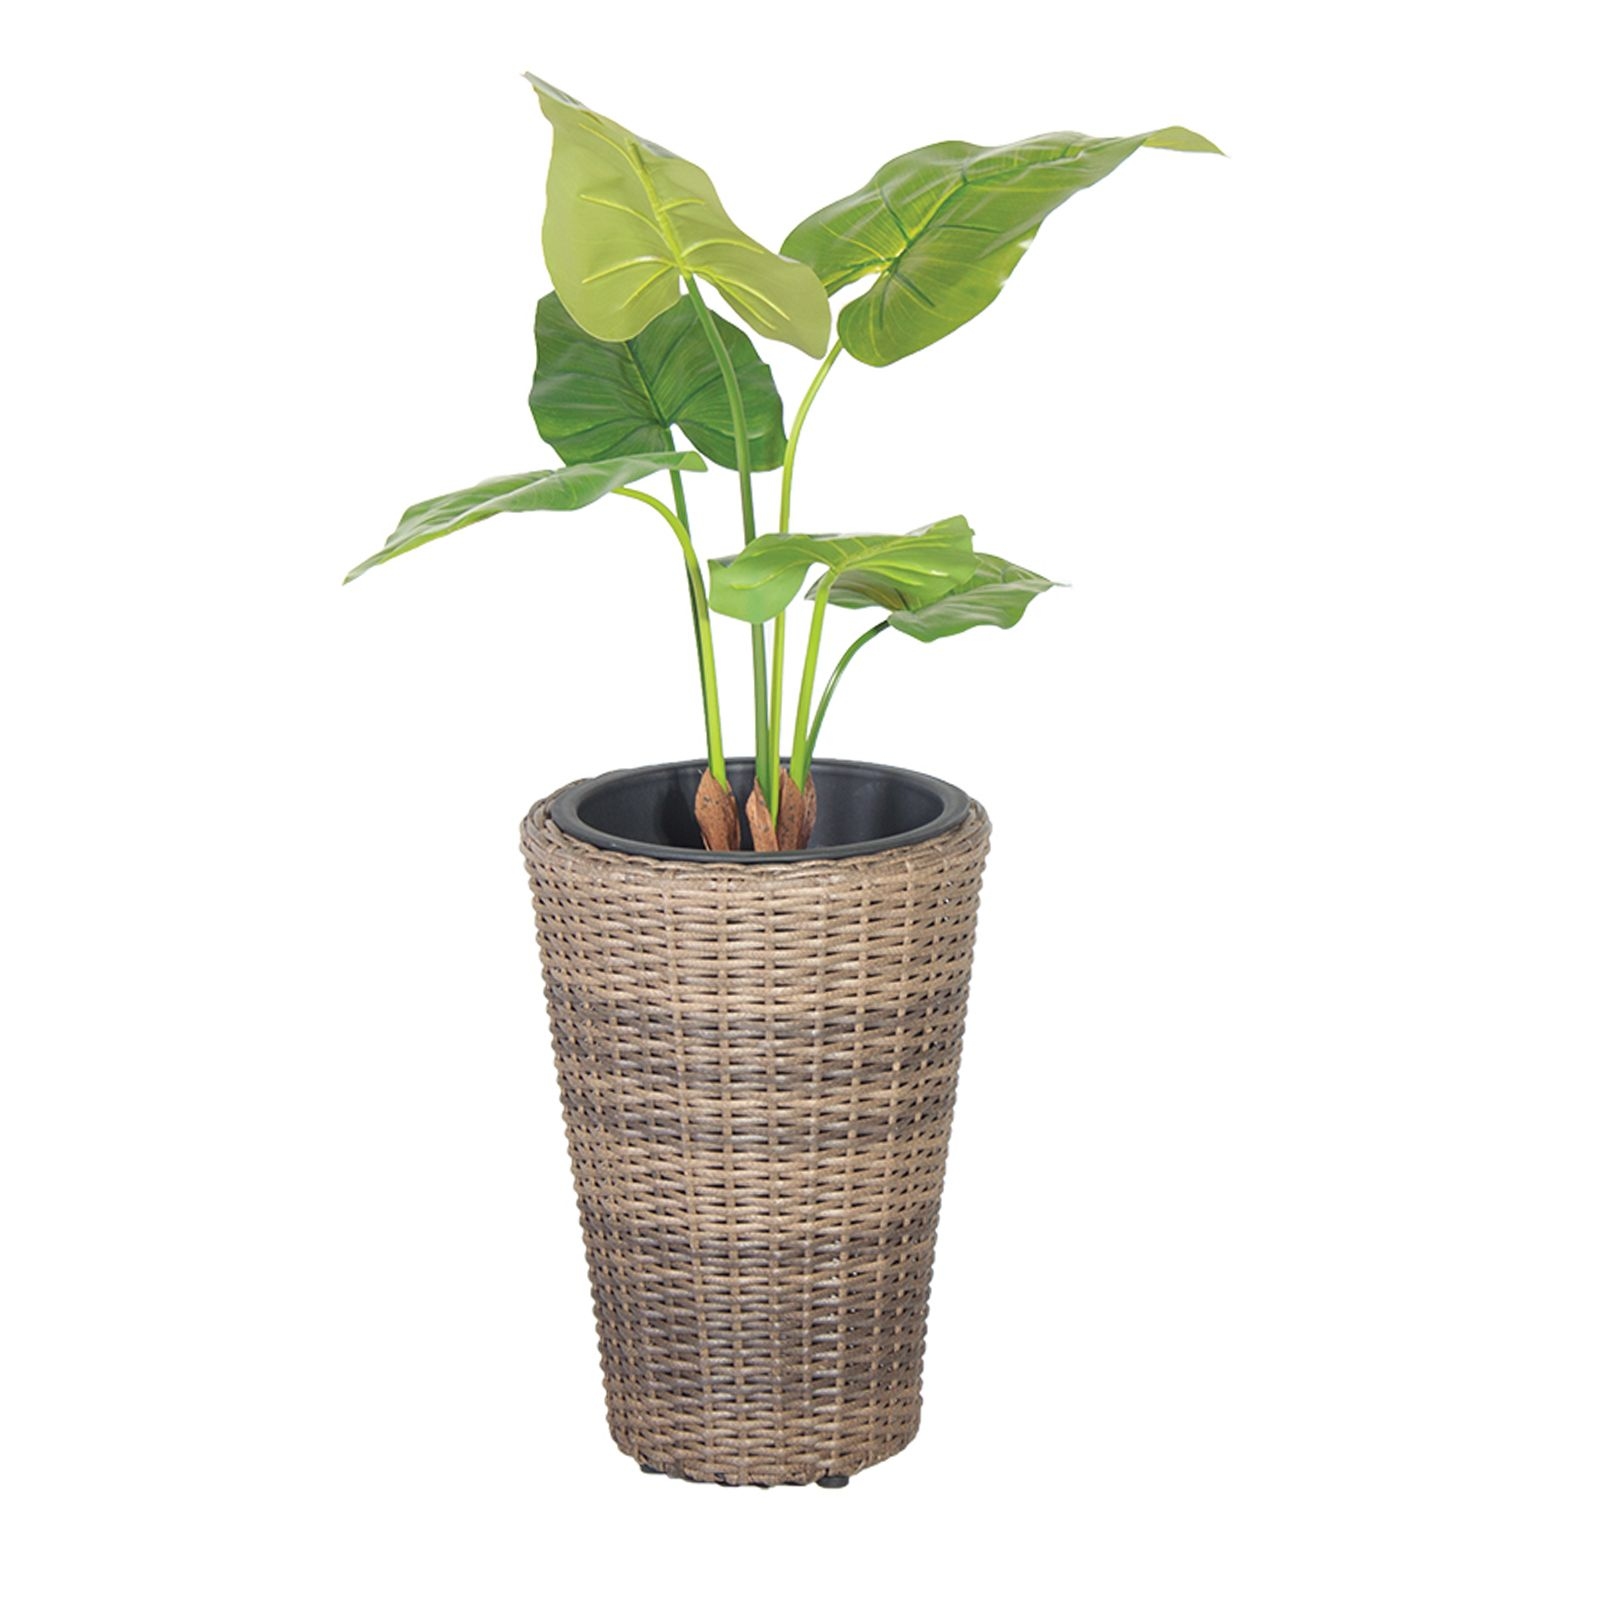 Iron planter   Shop for cheap Garden & Leisure and Save online